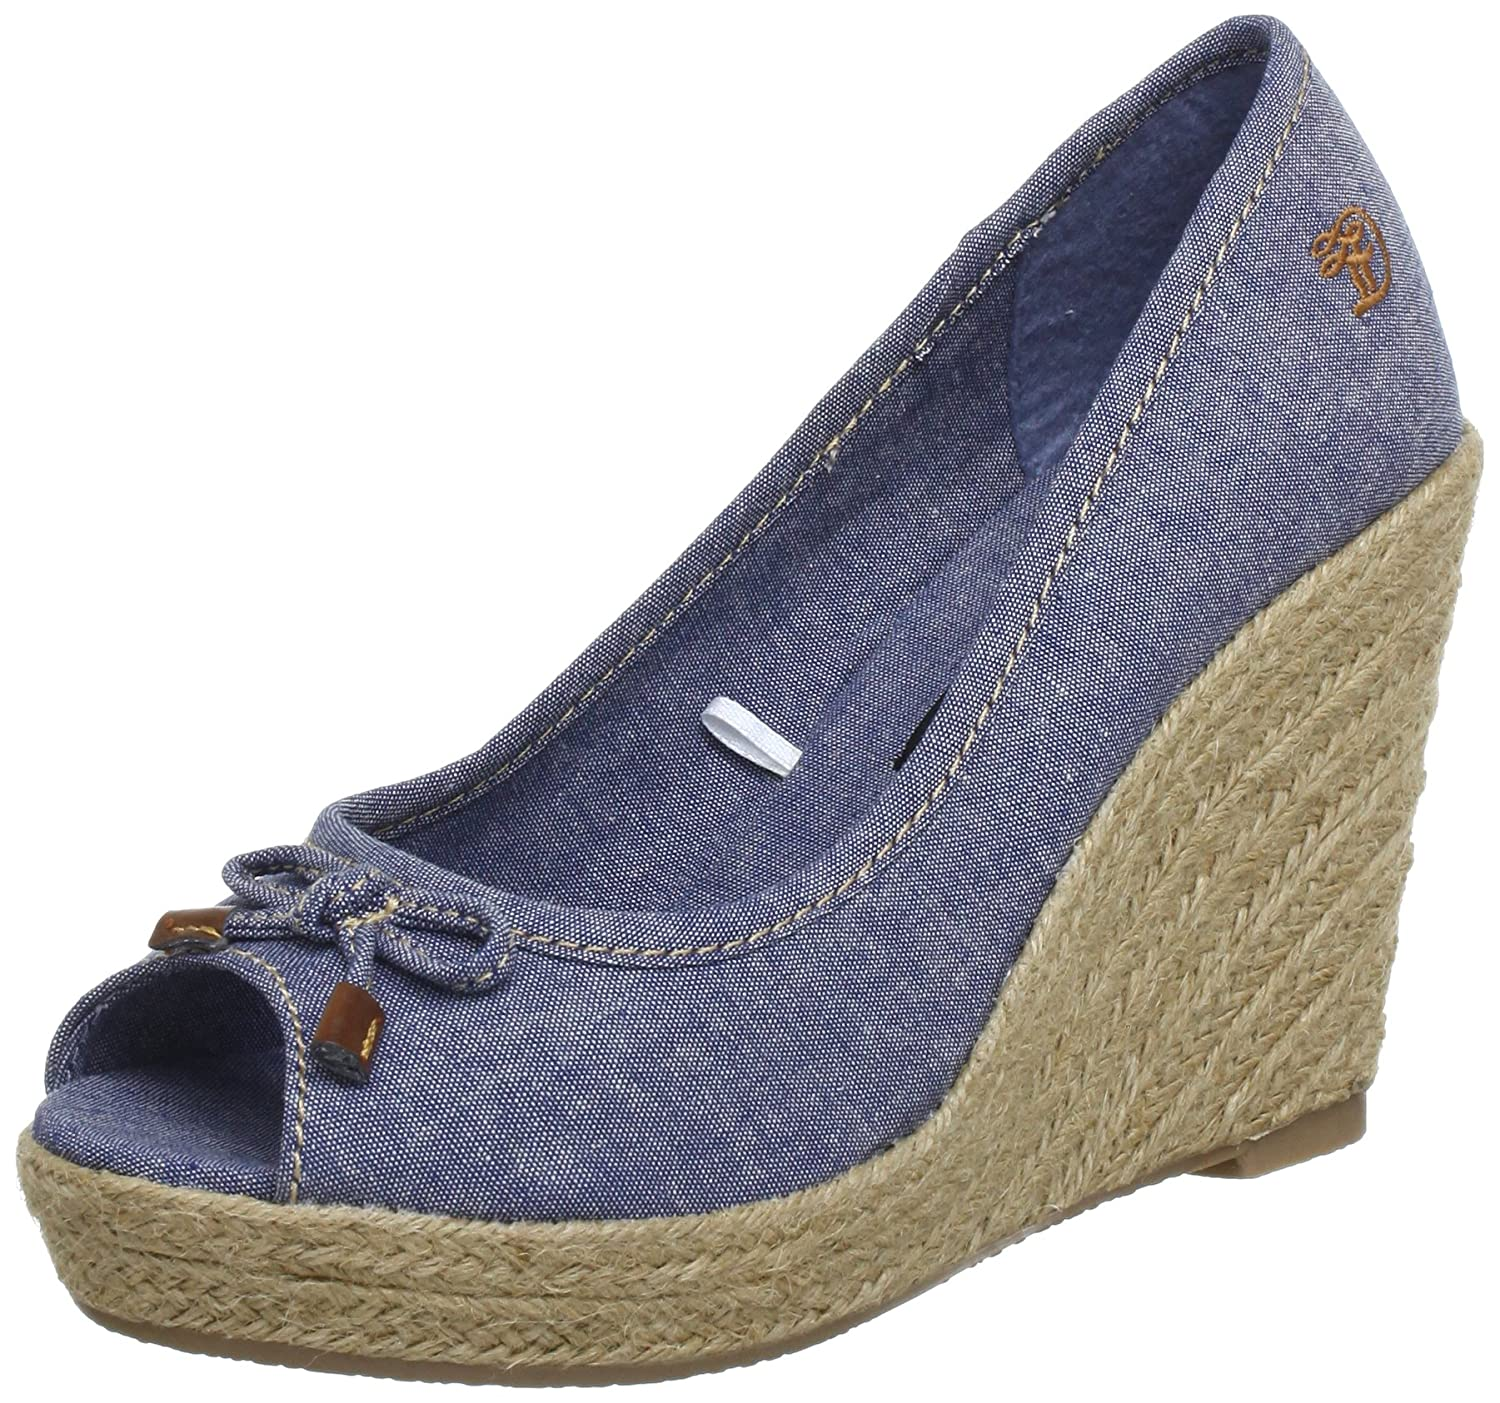 Tom Tailor Perugia 630100 Damen Espadrille